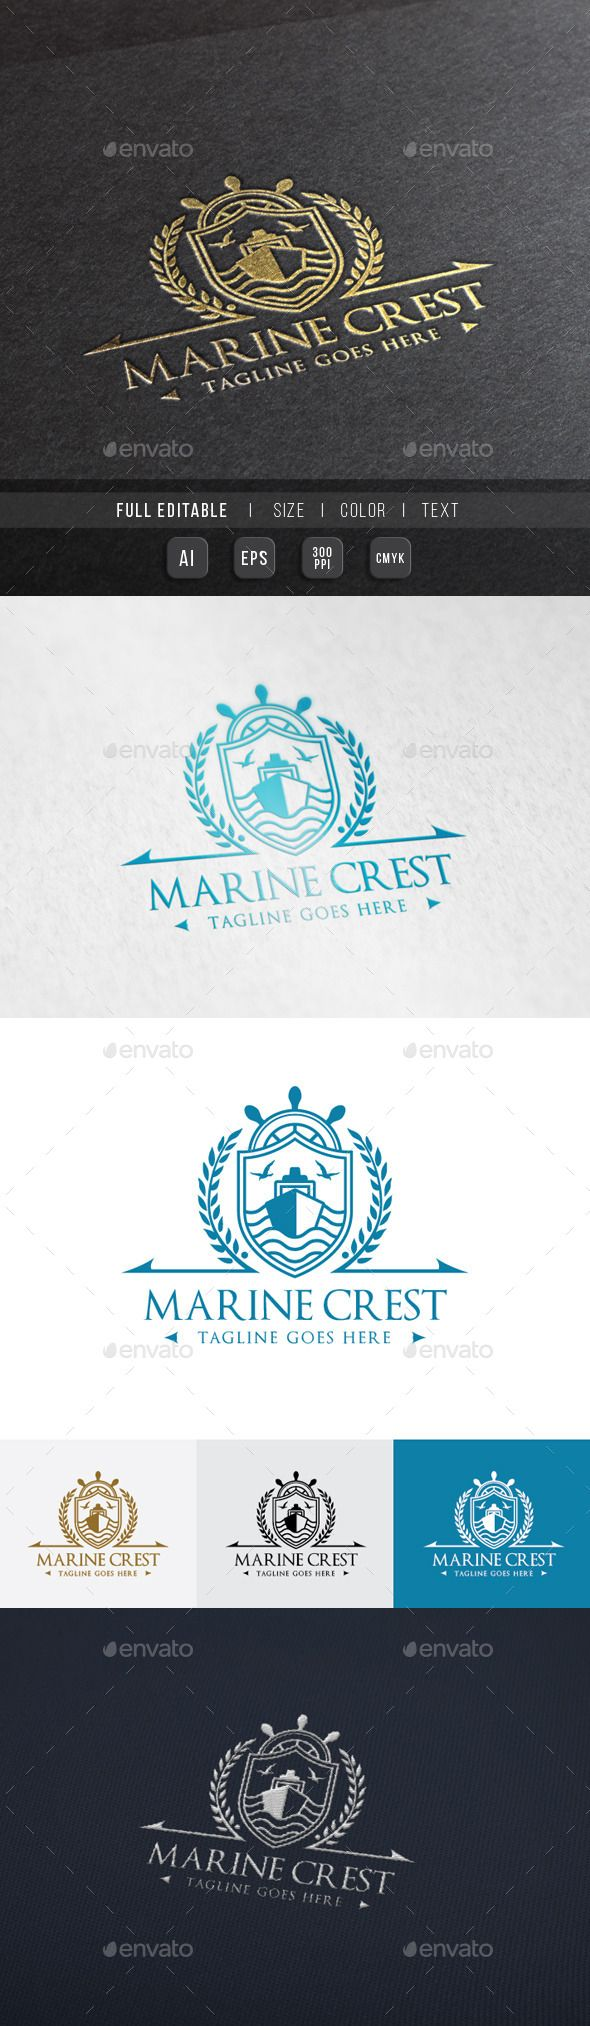 Royal Marine Ship Template #design Download: http://graphicriver.net/item/royal-marine-ship-/10111478?ref=ksioks